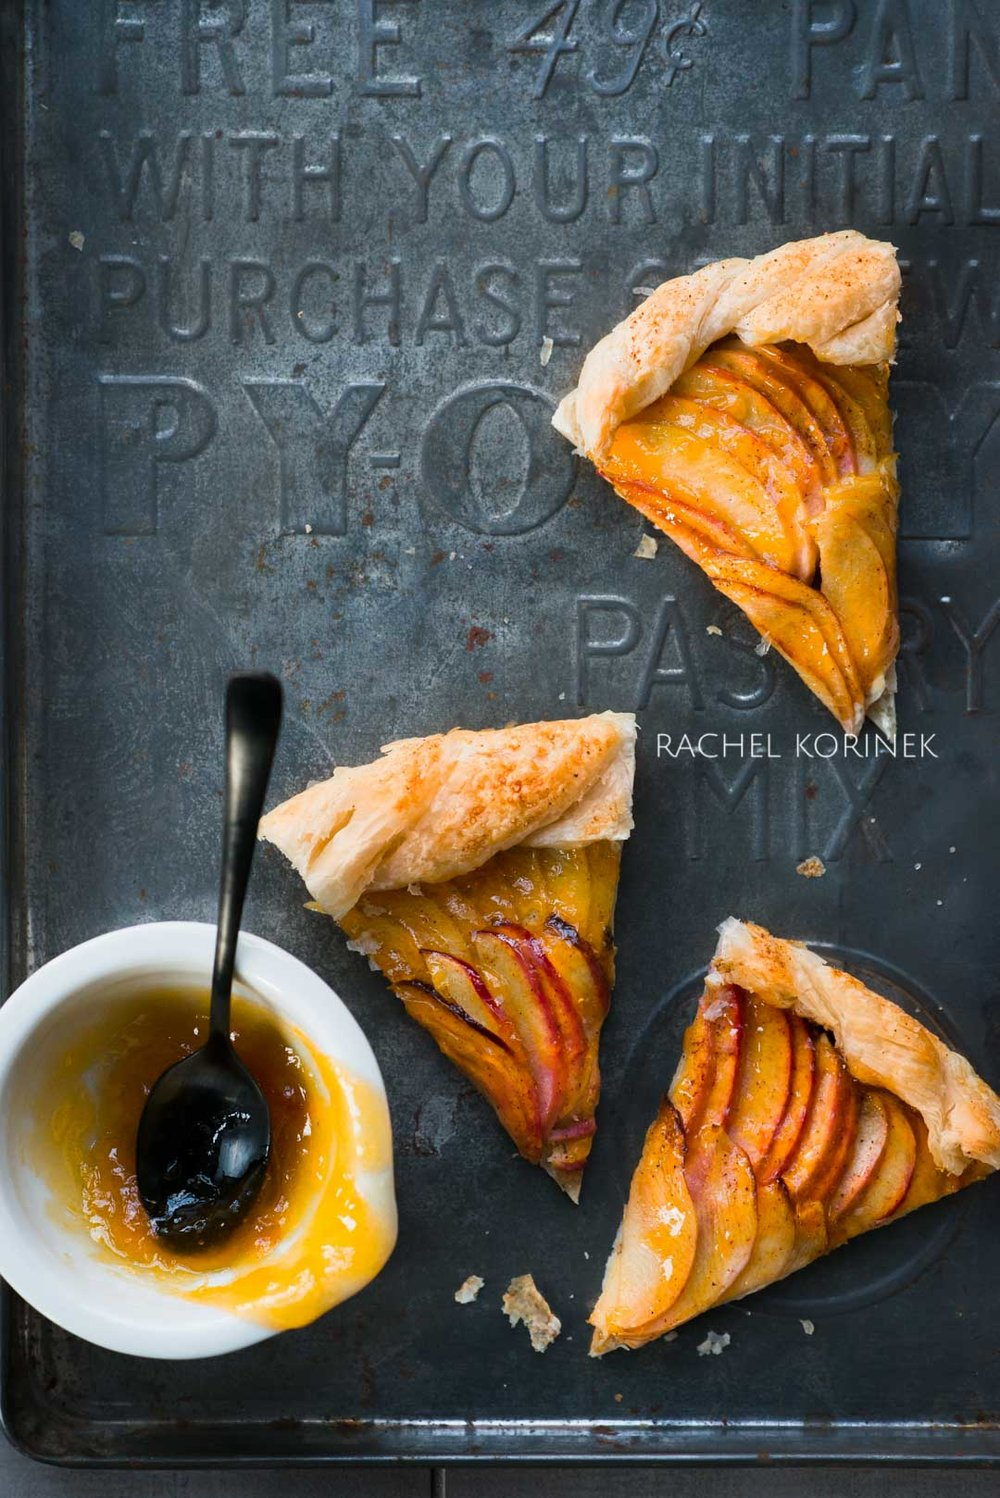 Rachel Korinek Melbourne Food Photographer Apple Crostata  Click to check out my latest food photography projects.  #twolovesstudio #beautifulcuisine #foodbloggerpro #foodphotography #learnfoodphotography #foodblogger #learnphotography #foodstyling #lightingtips #naturallight #foodphotographer